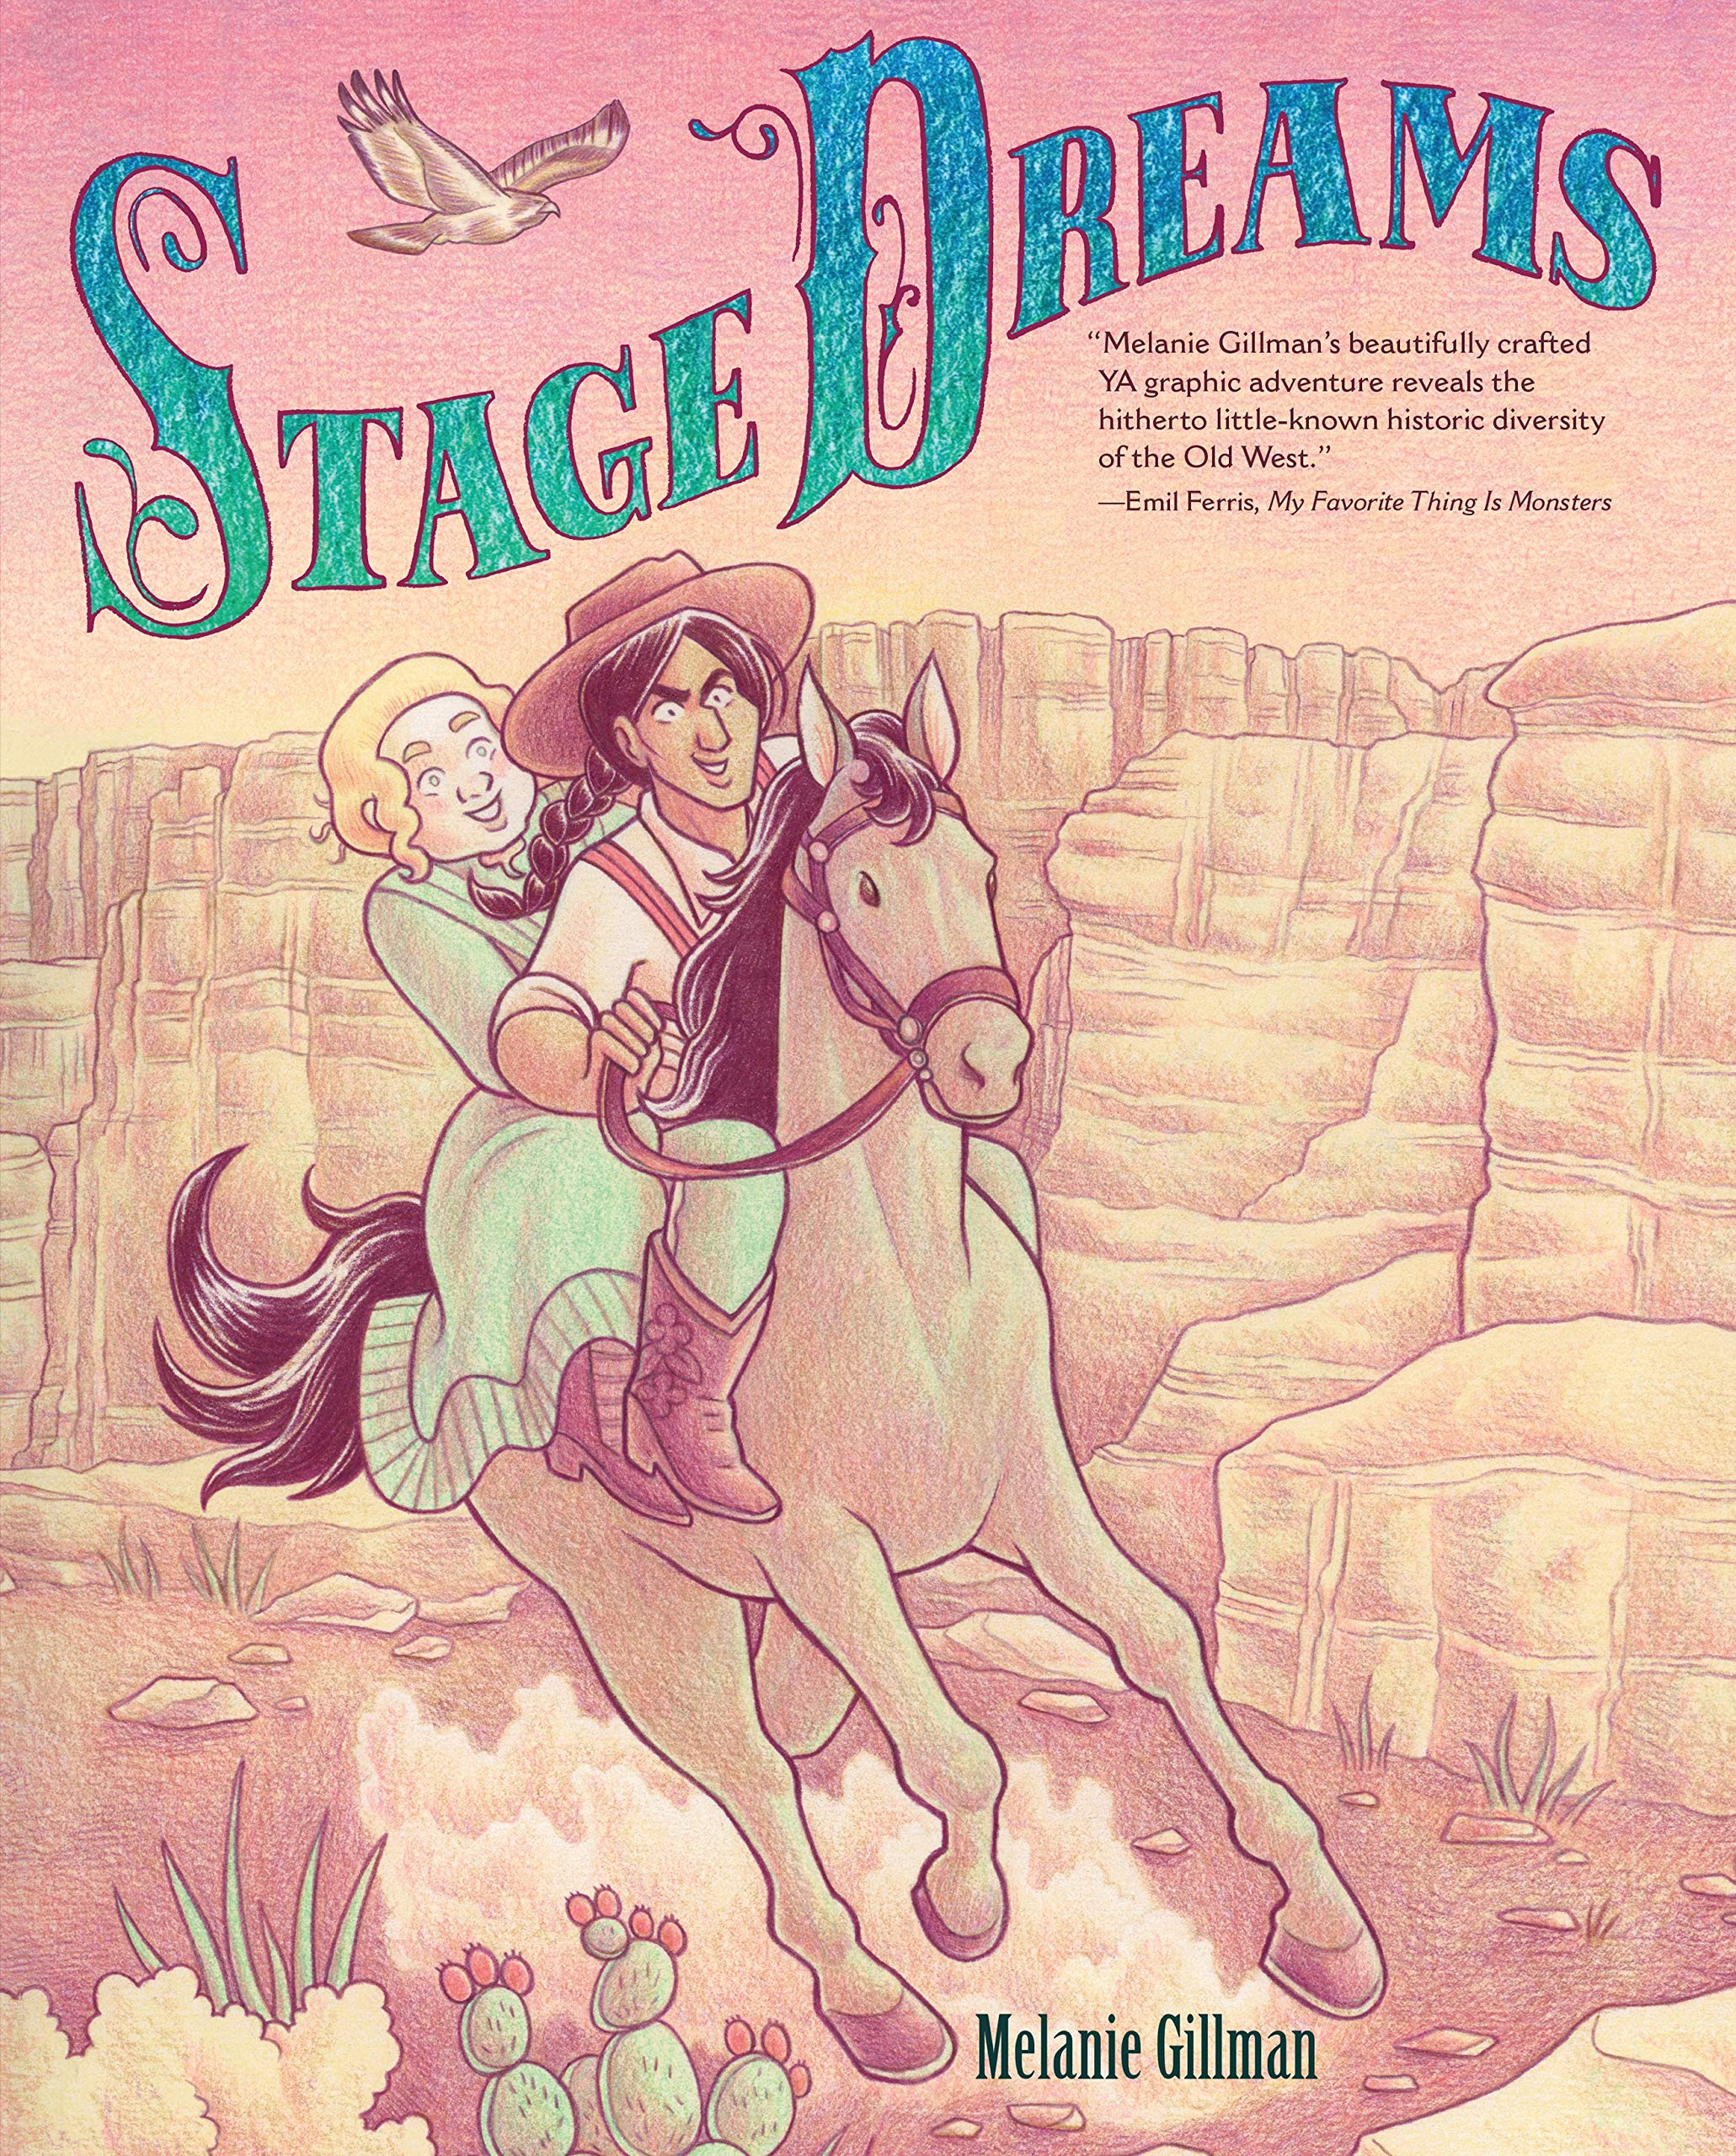 STAGE DREAMS by Melanie Gillman  (Lerner Graphic Universe, Sept 2019)